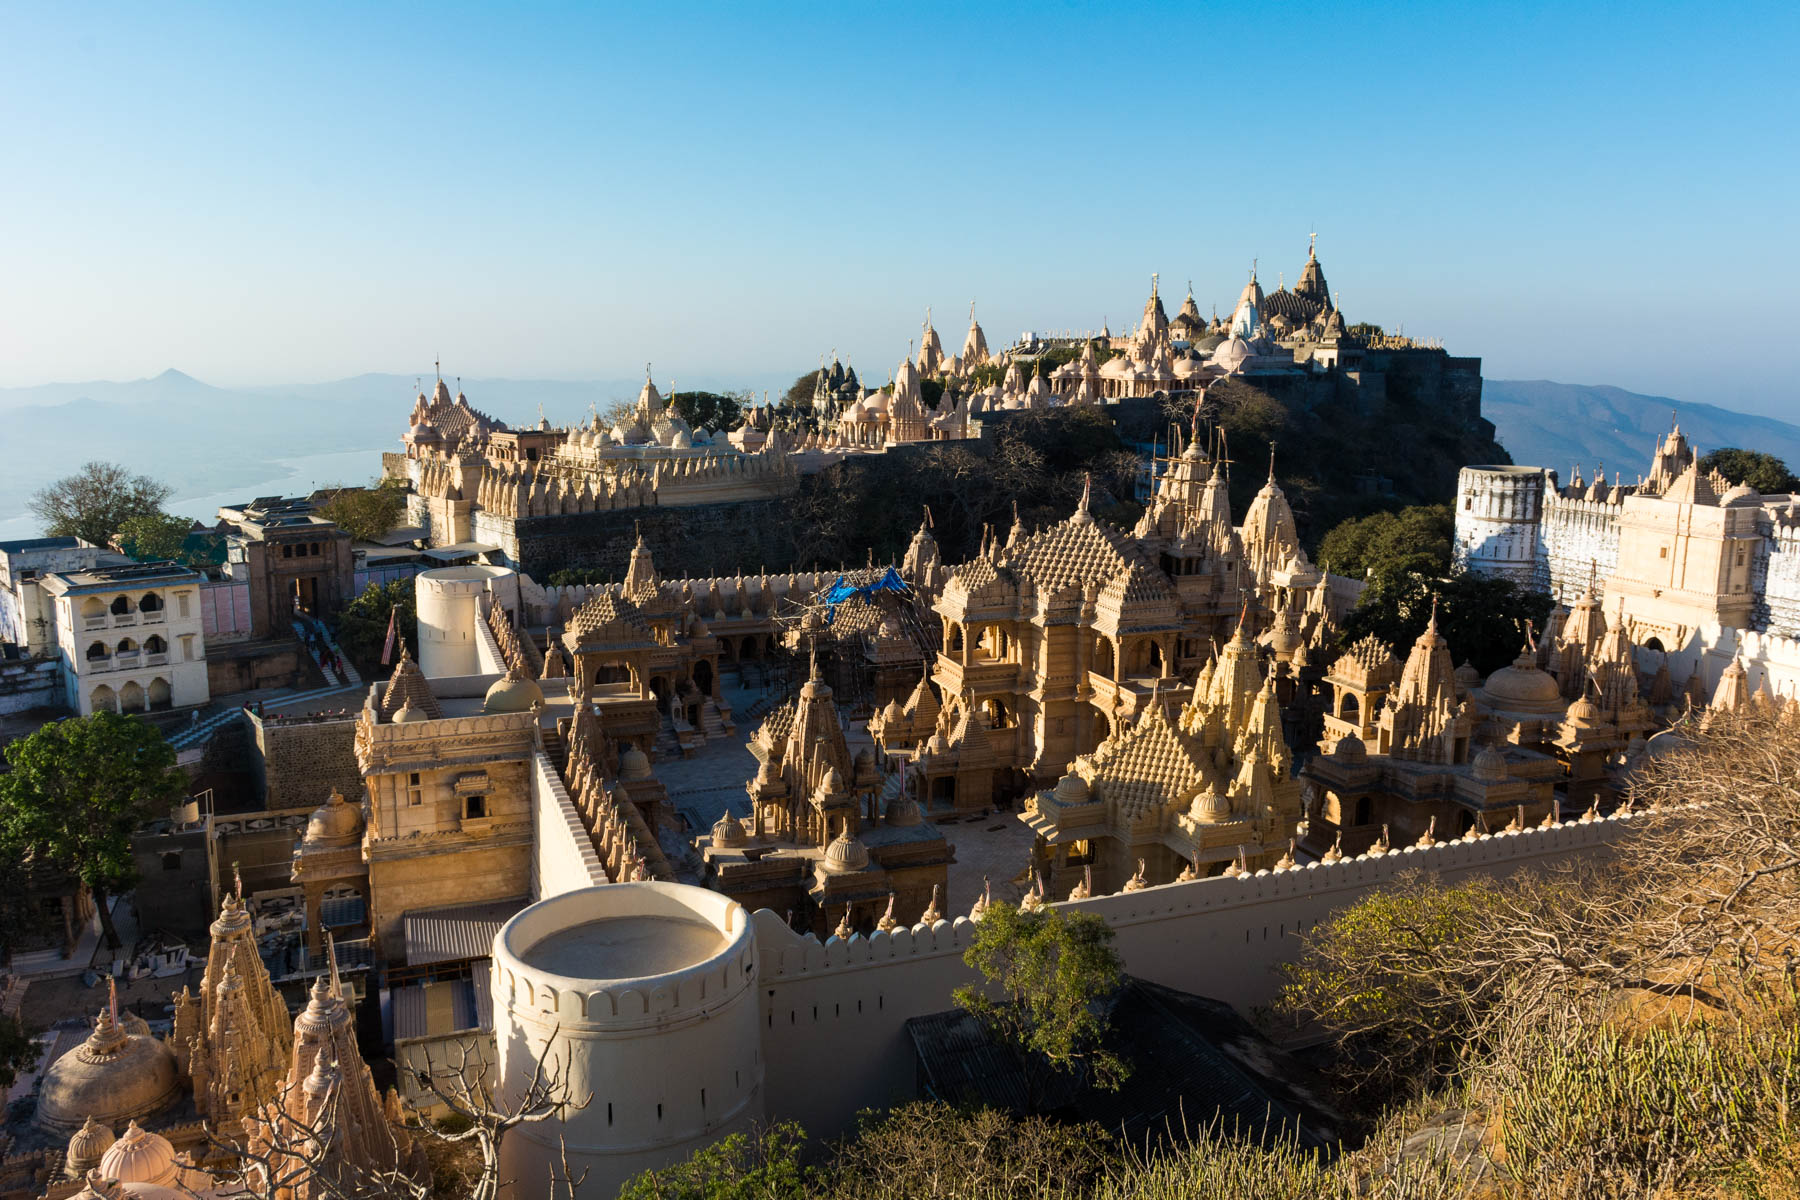 Jain pilgrimage in Palitana, Gujarat, India - Palitana temples from above - Lost With Purpose